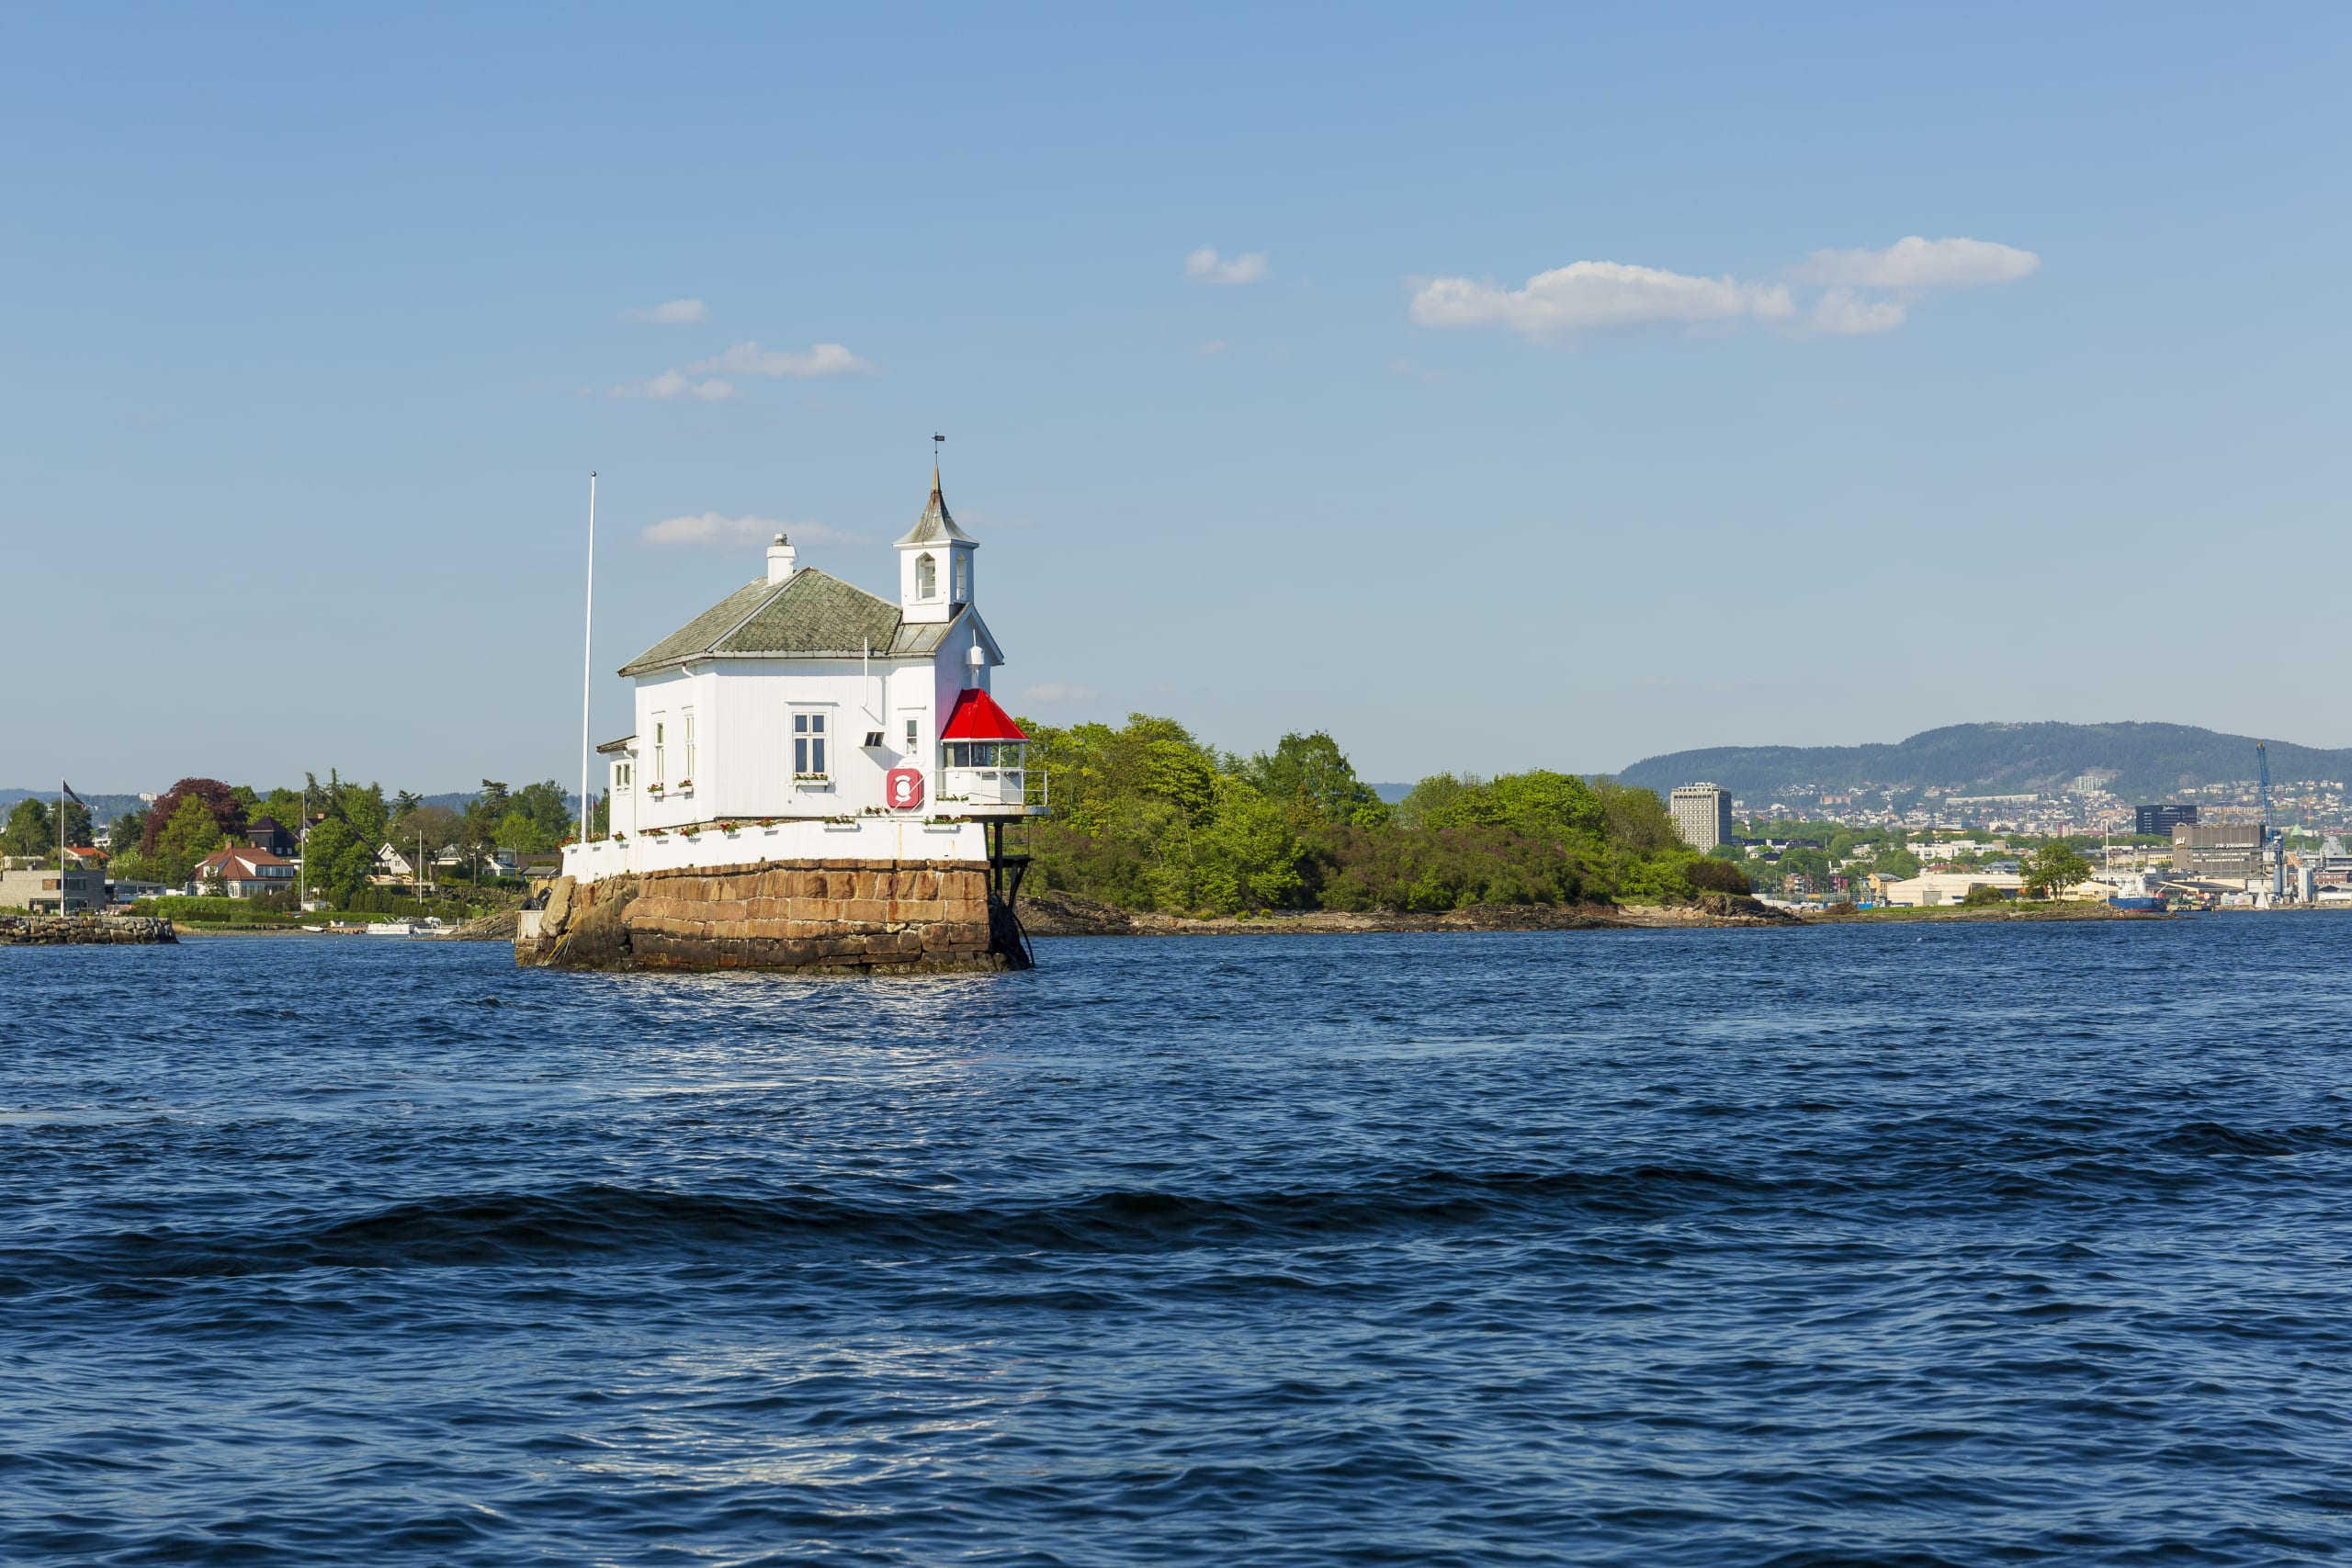 Dyna lighthouse on the coast of Oslo